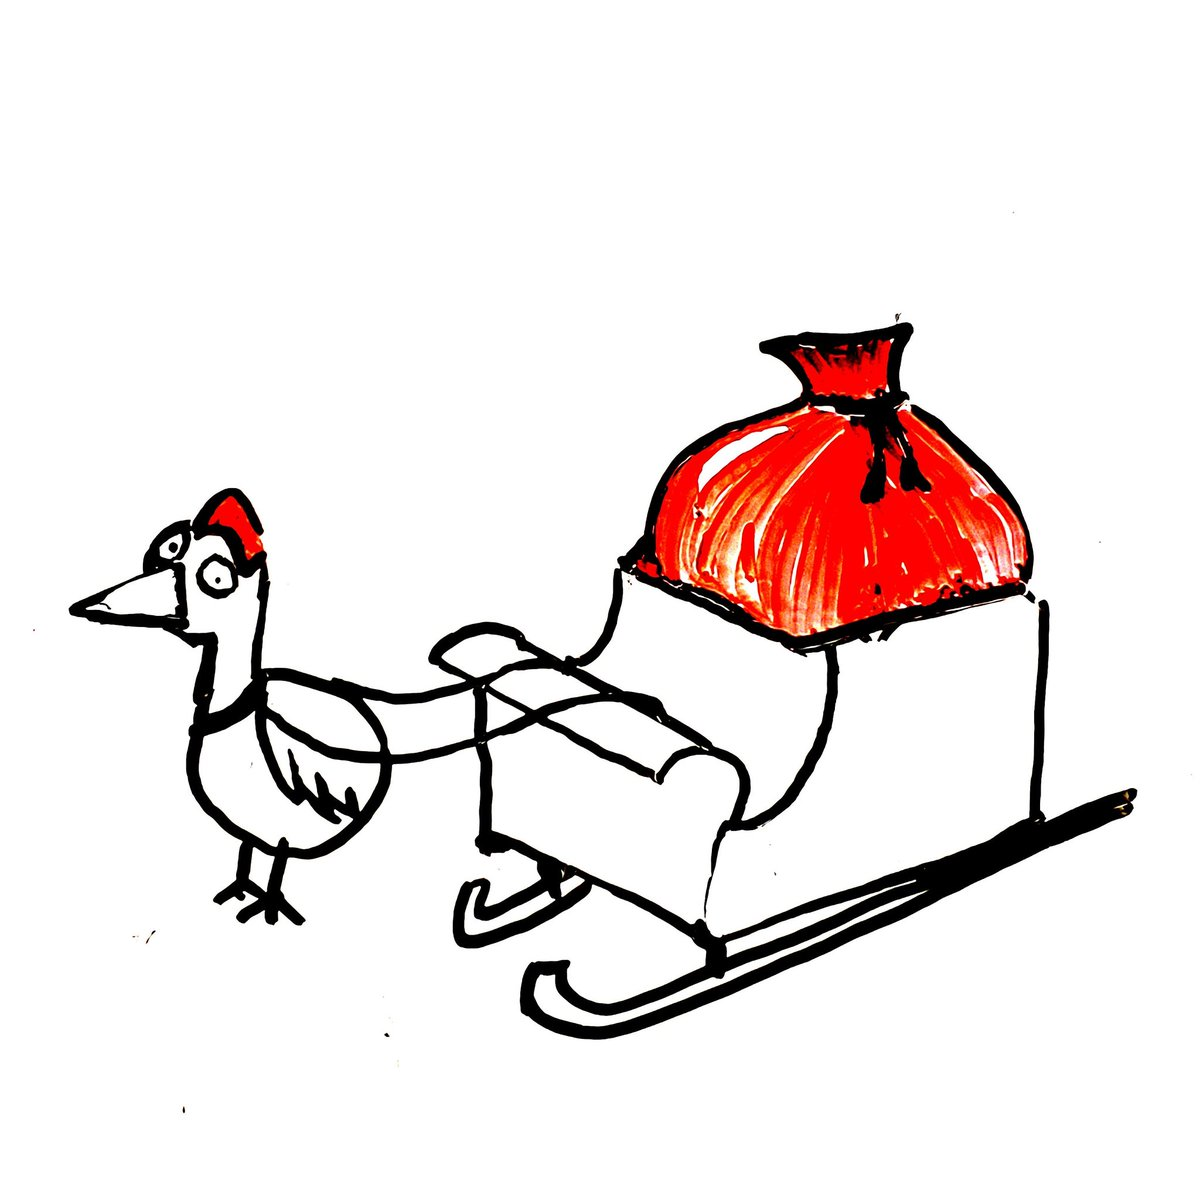 Ronda the Christmas Chicken Was drawn very out of scale  And when the artist saw it They said it was good enough  #whiteboardart #doodle #christmas #cartoon #chicken #santaclaus